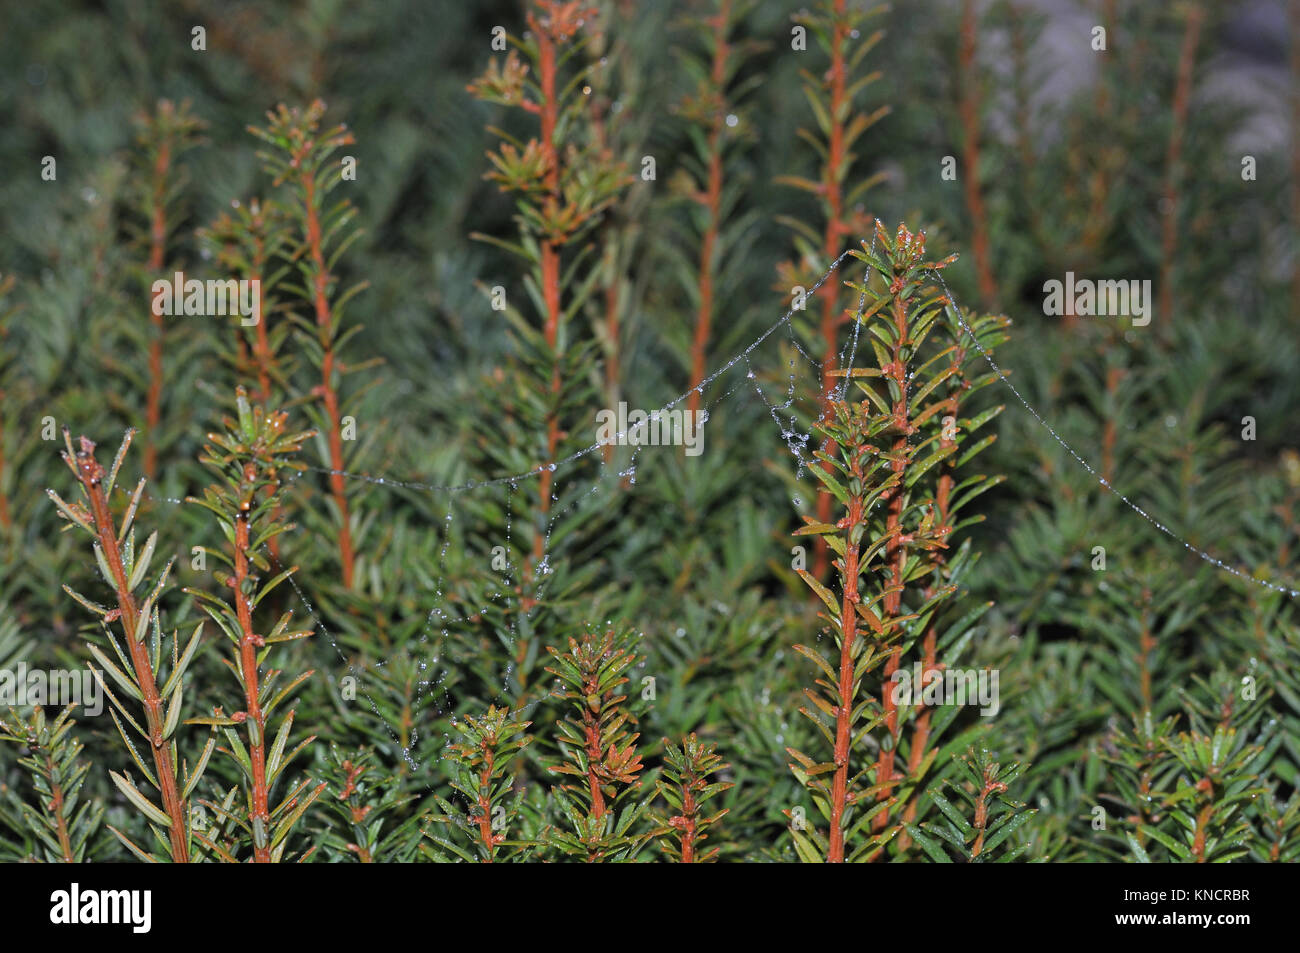 yew hedge with spider silk - Stock Image